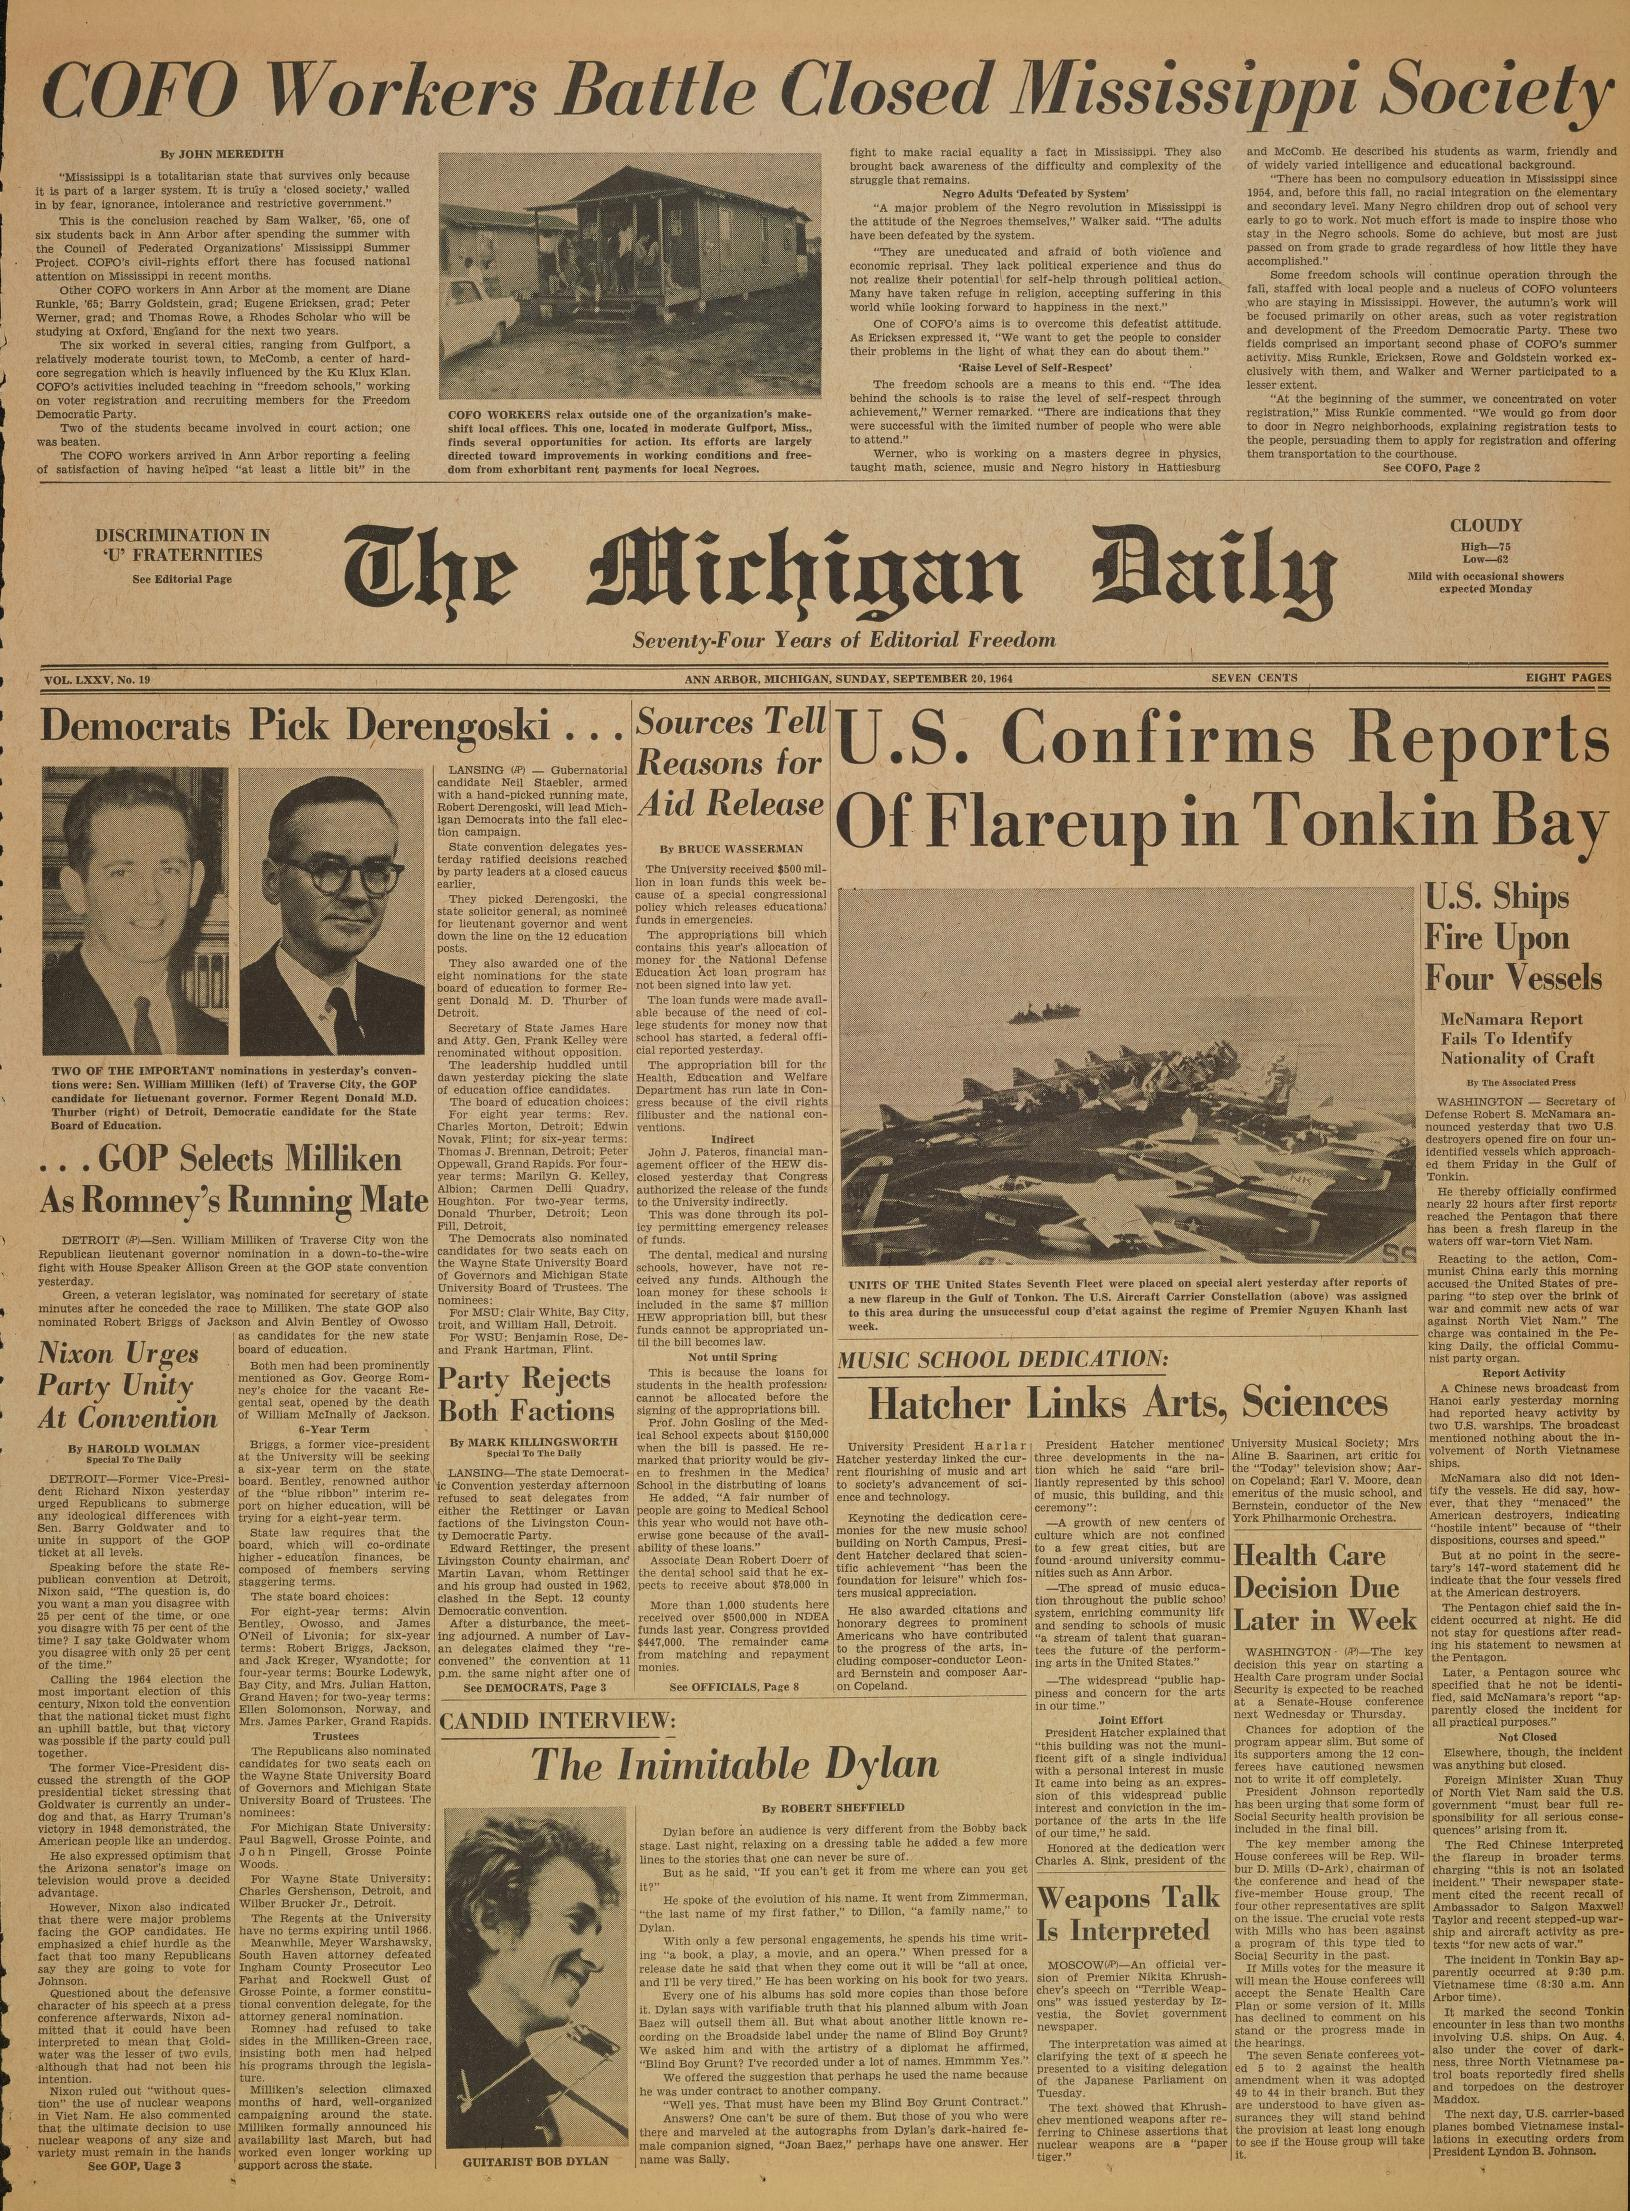 Michigan Daily Digital Archives - September 20, 1964 (vol  75, iss